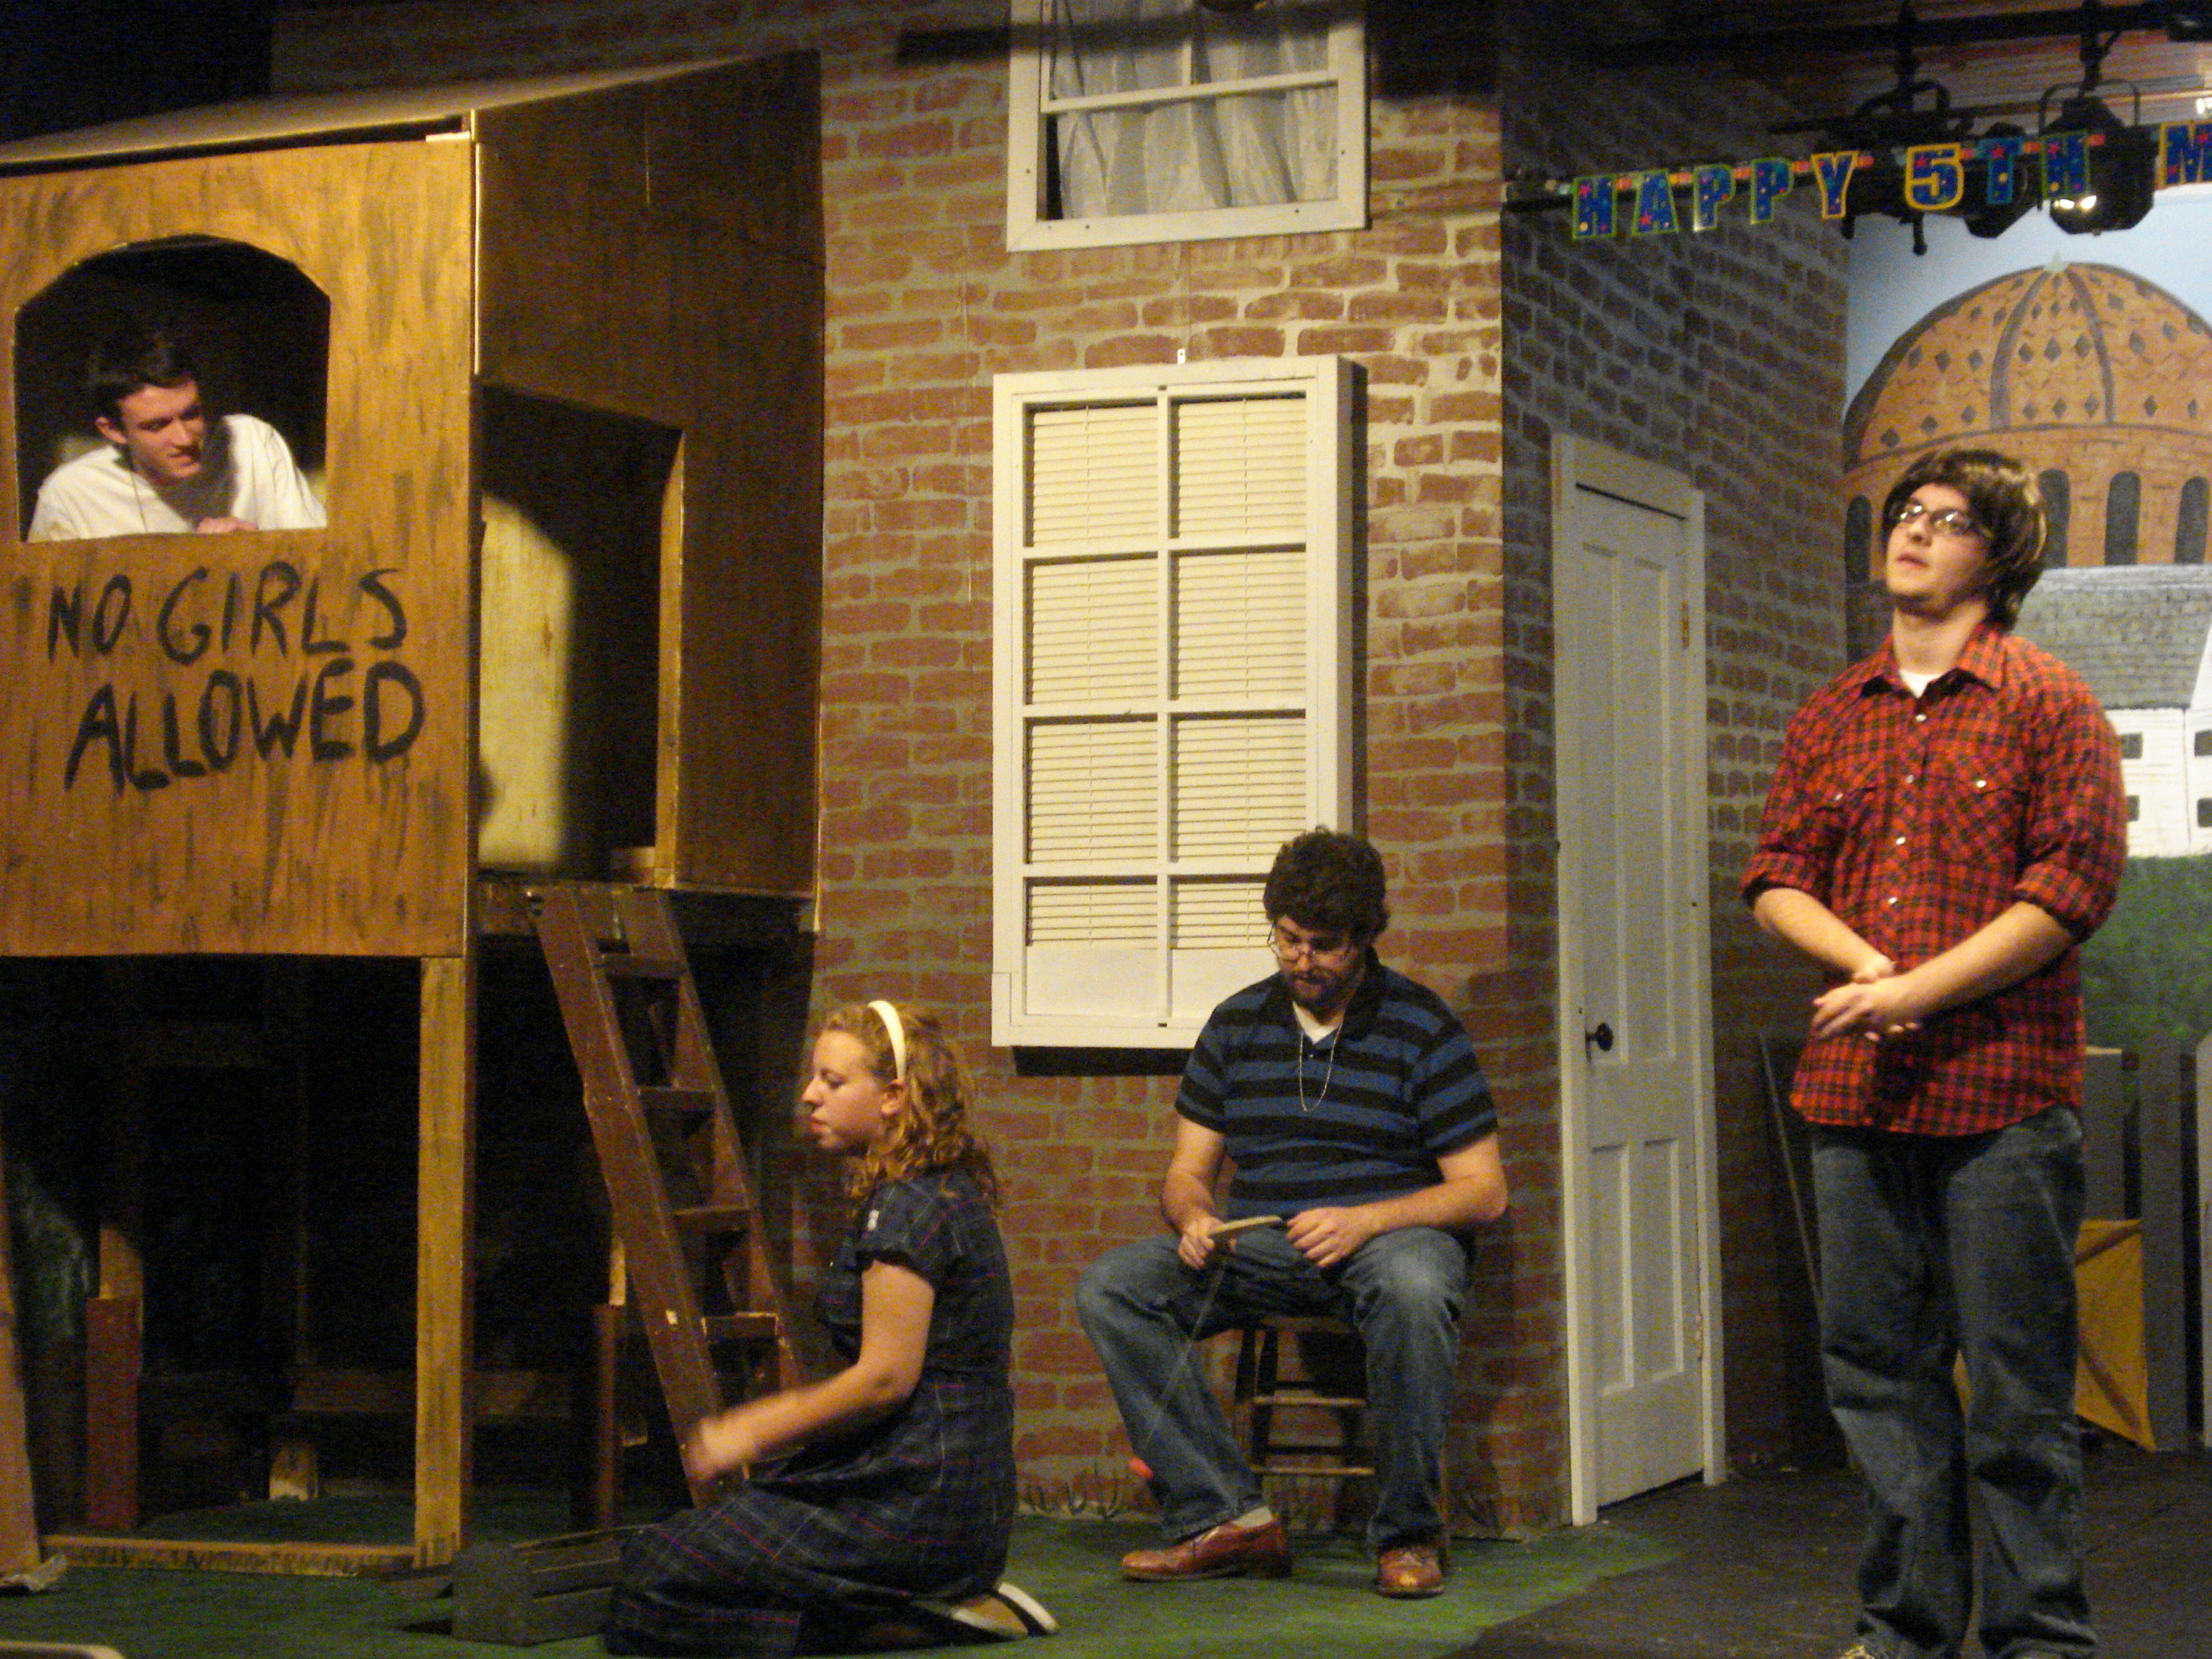 From left: Michael Green as Eddie, Erin Sheehan as Annie, Dylan Brozyna as Georgie and Max Gucinski as Rudy